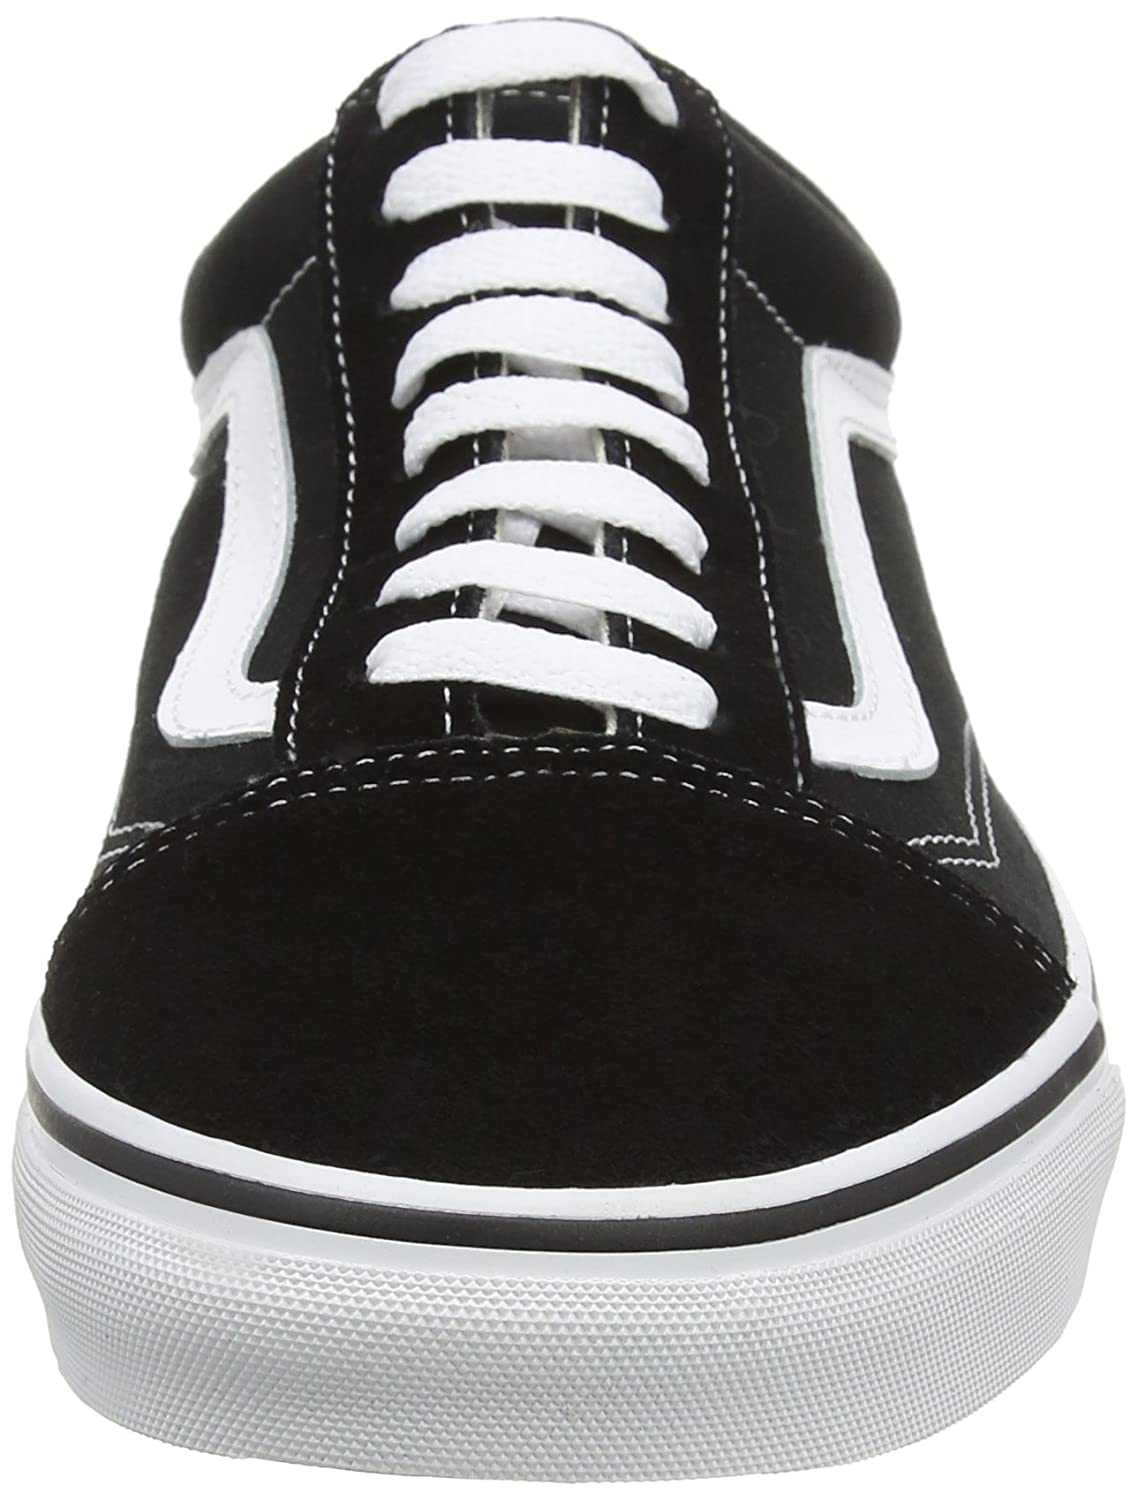 Vans Old Skool Svart Og Hvitt Amazon o17RoOh